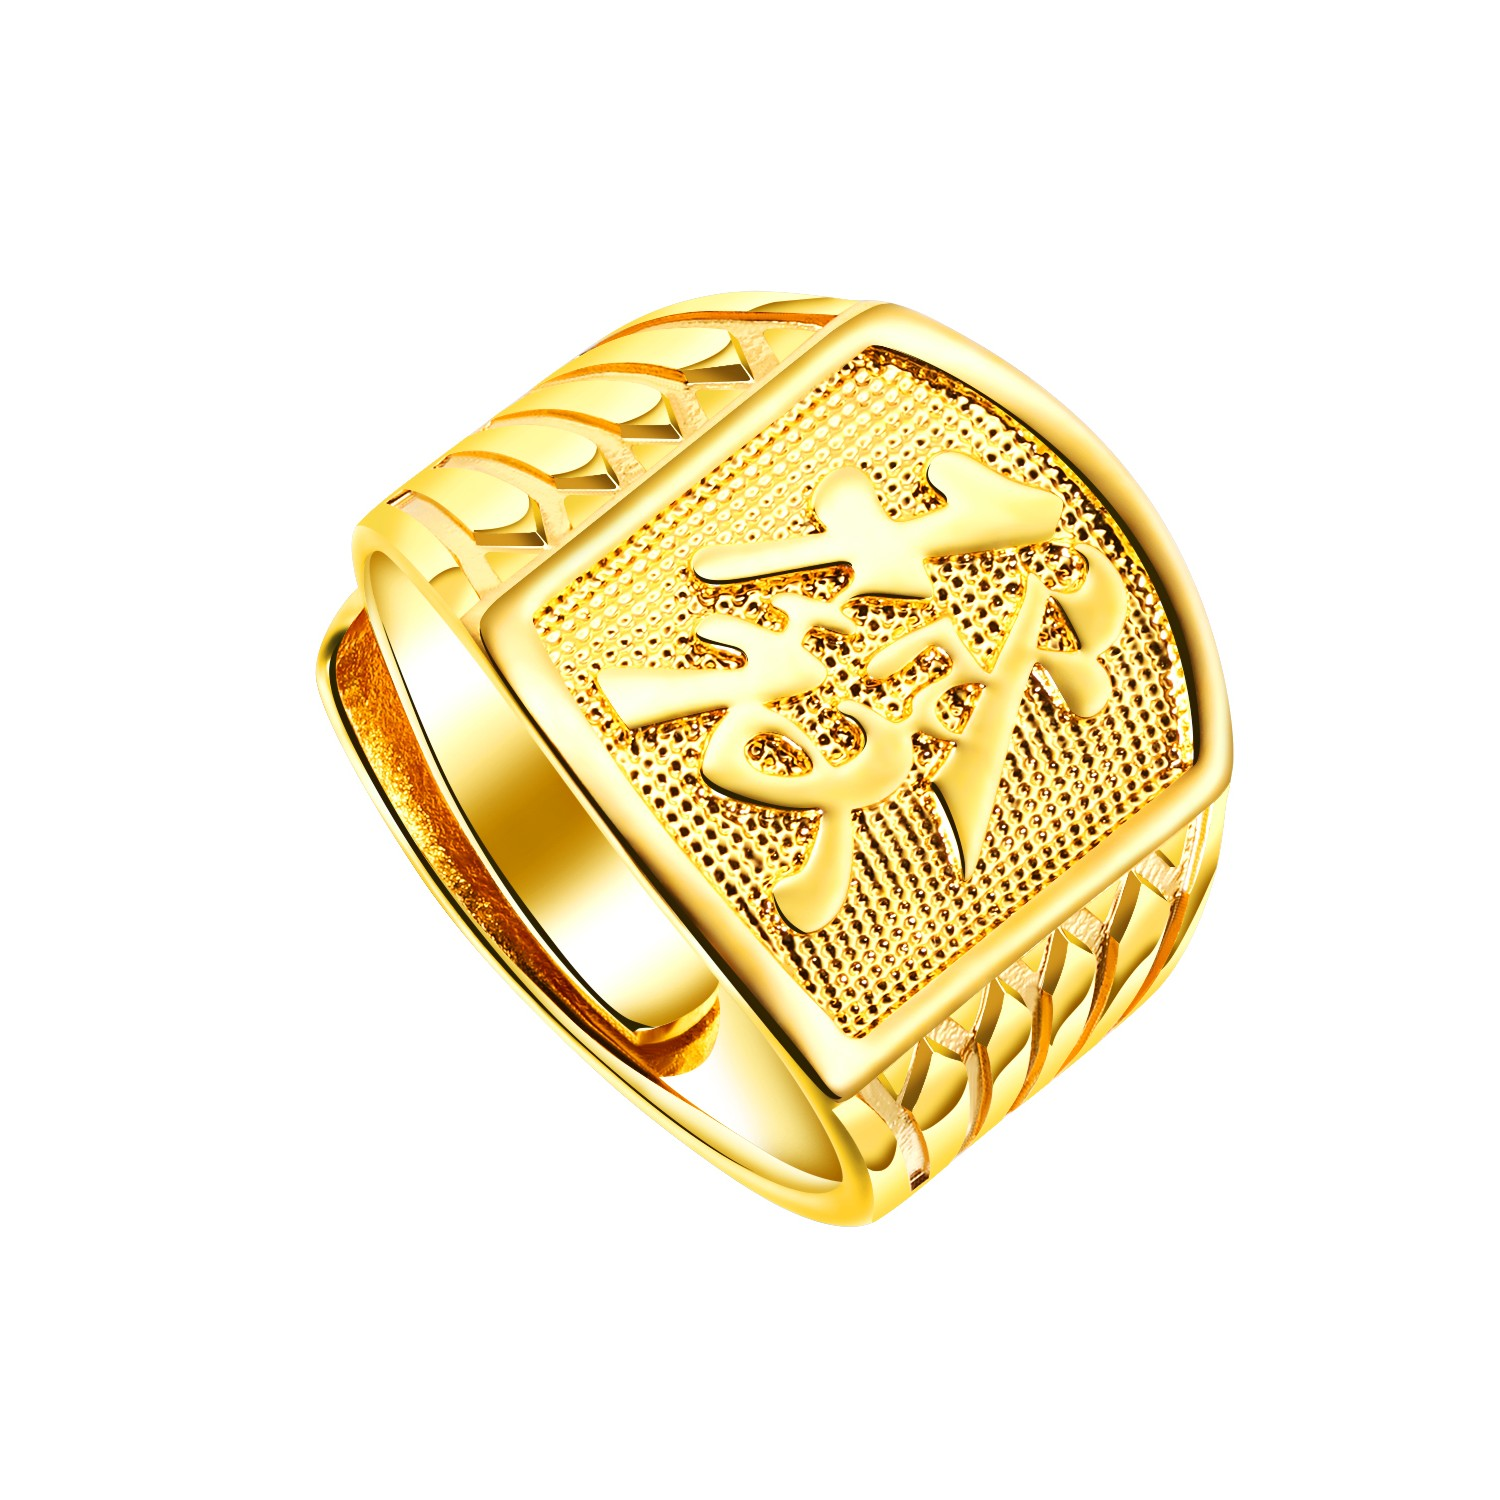 plymouth victoria devon gold contemporary gallery rings yellow sewart product ring white jewellery